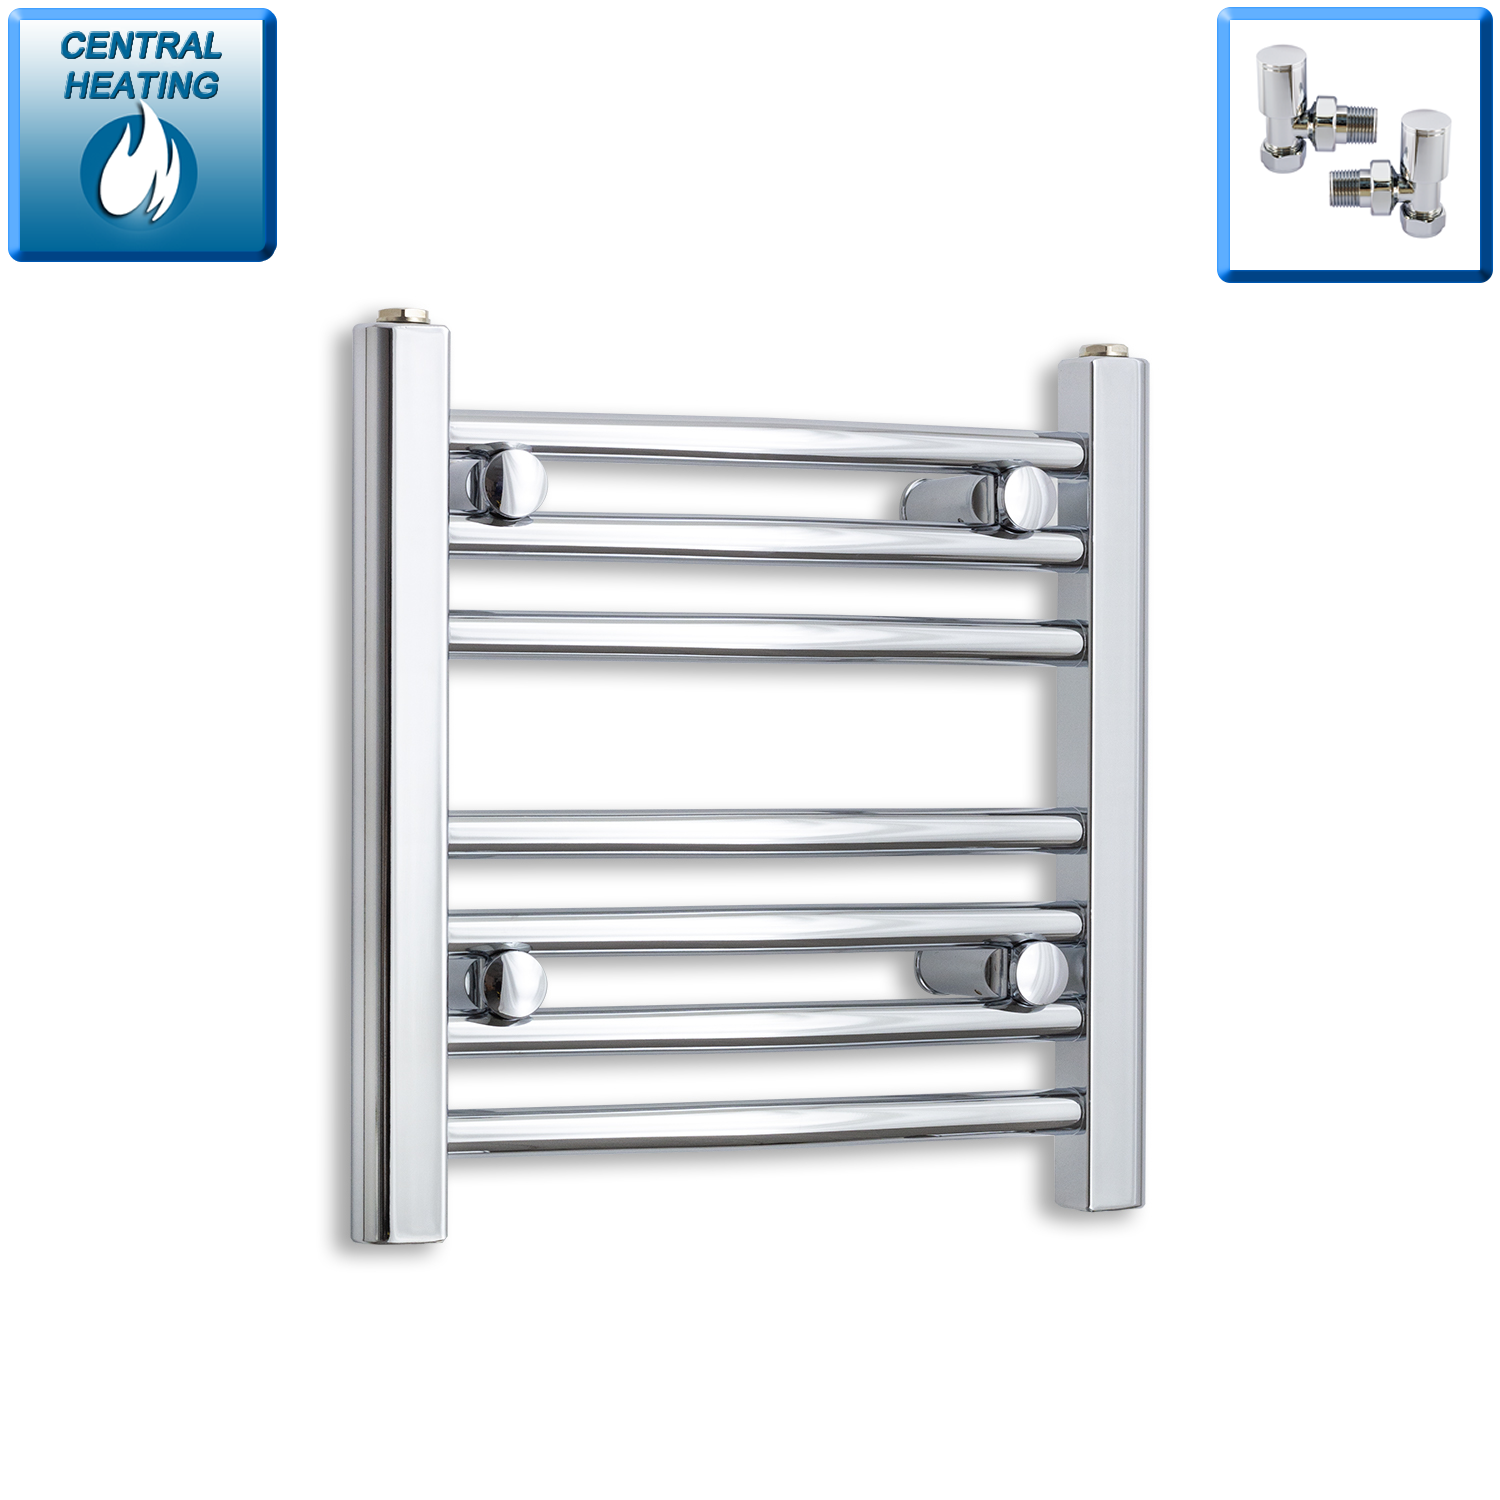 500mm Wide 400mm High Chrome Towel Rail Radiator With Angled Valve